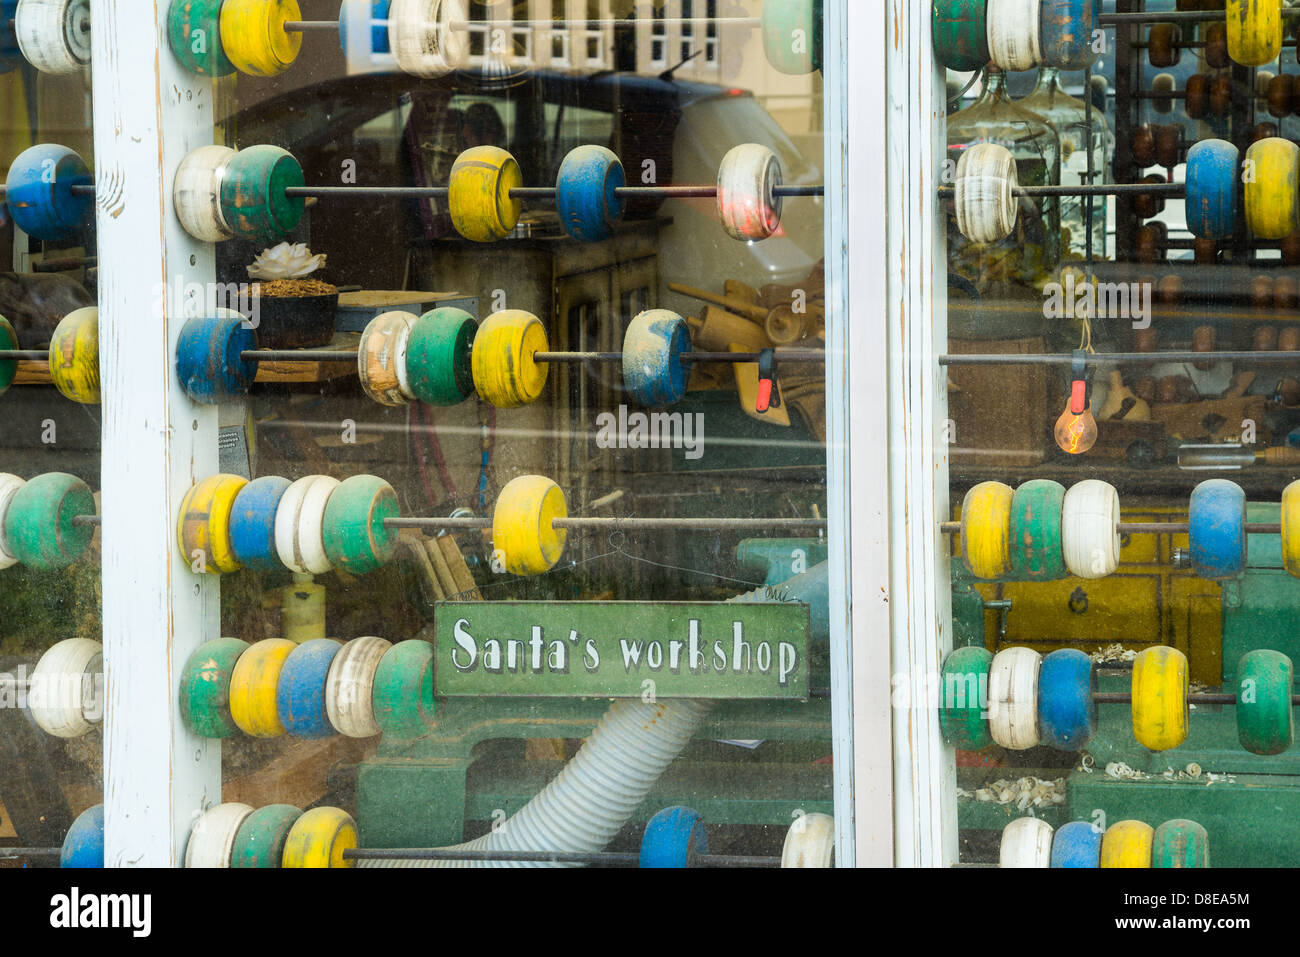 Santa;s workshop. Window with abacus beads. - Stock Image